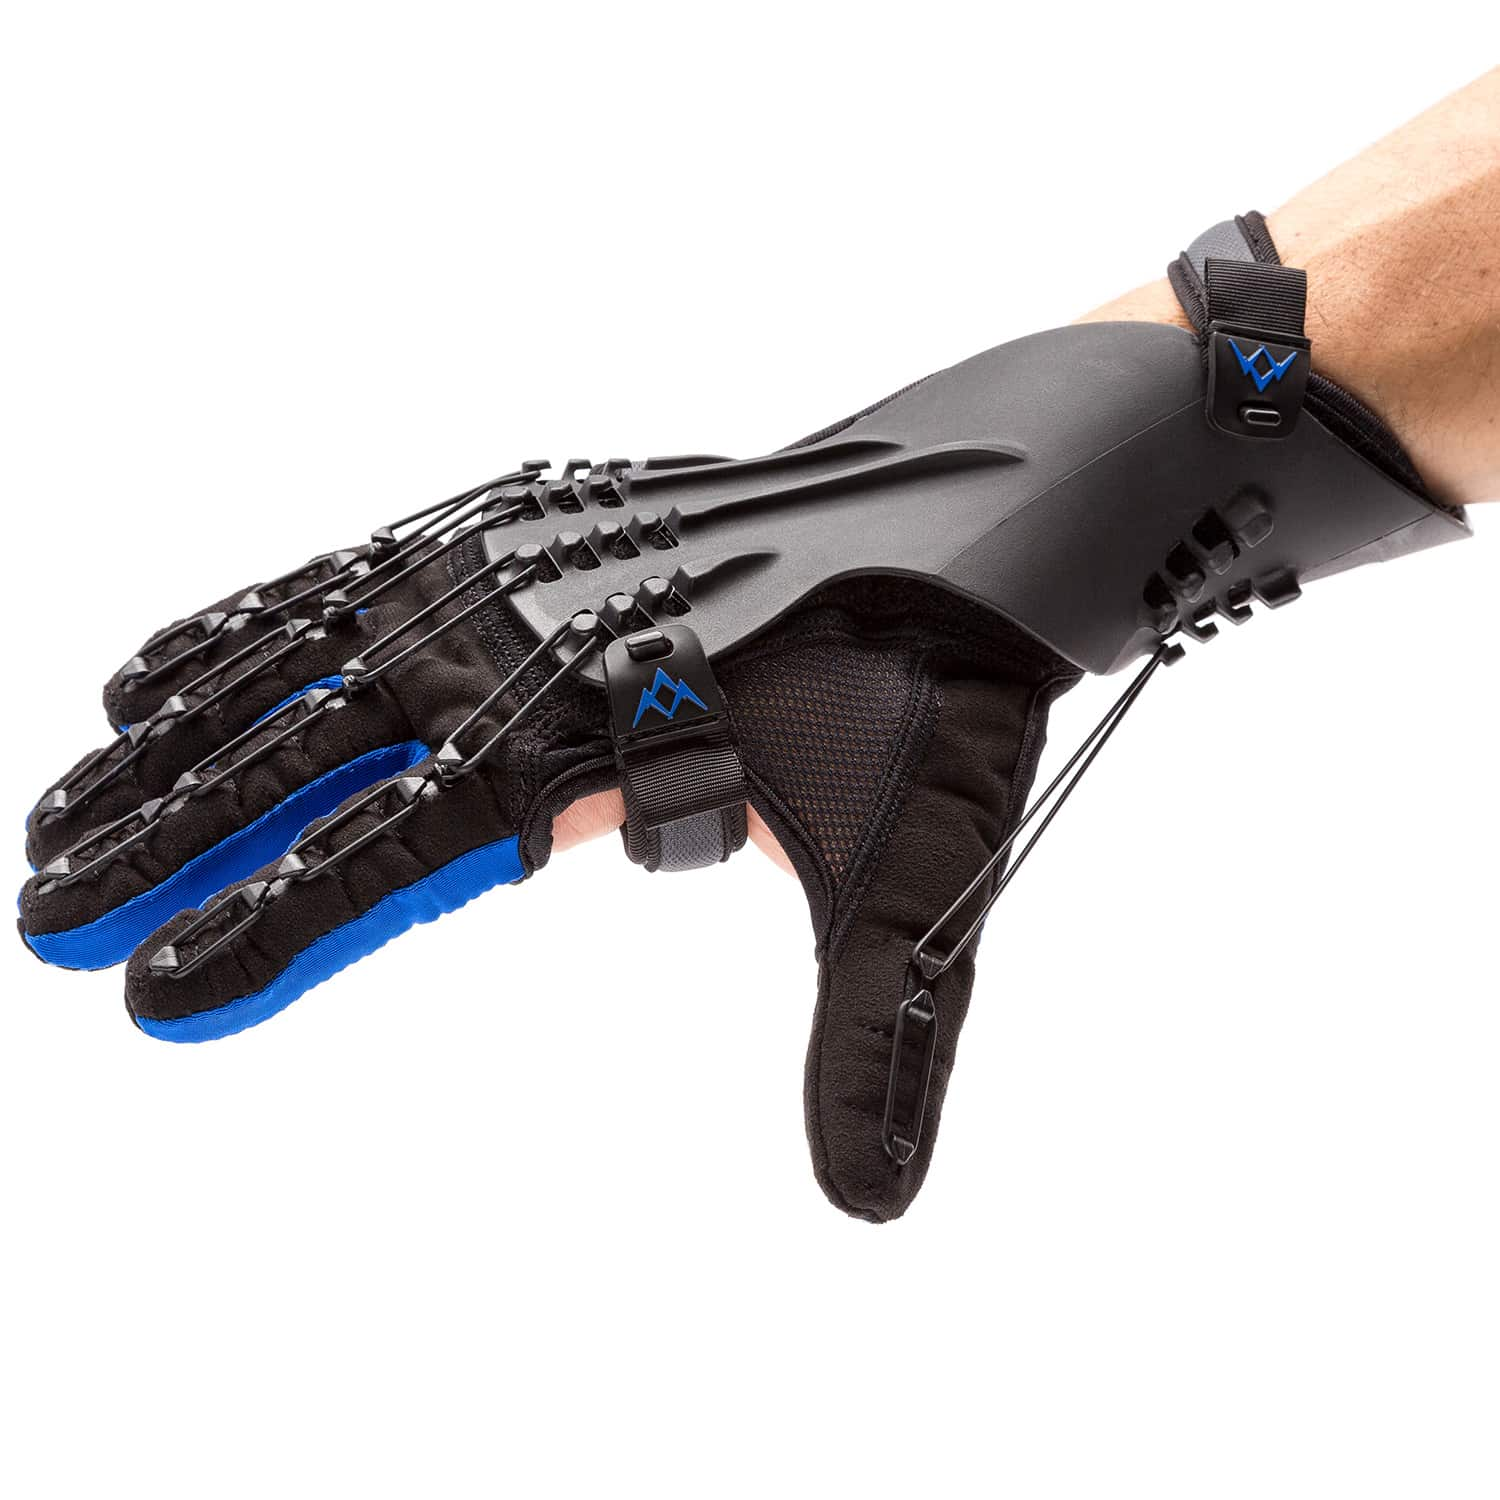 Saebo Glove is one of the many products the company offers.